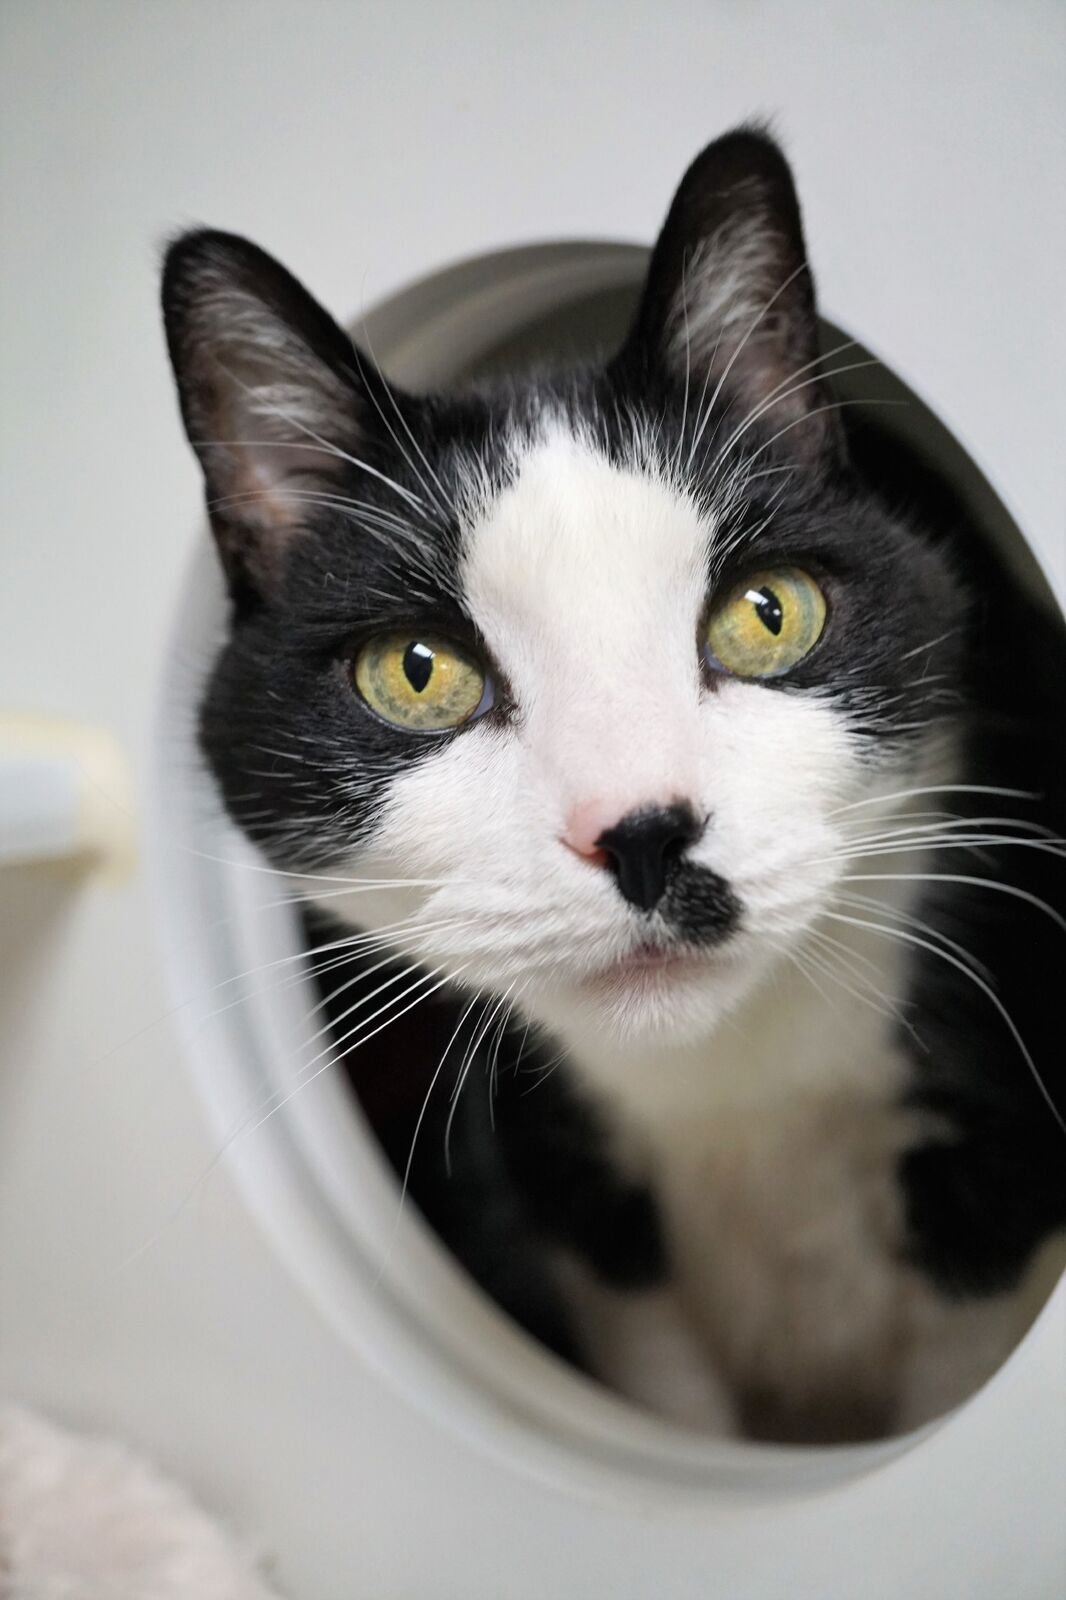 Love to chat? So do I! Let's be friends – my name is Smudgy. I'm an 11 year old tuxedo boy who loves to catch your attention by saying hi. My favorite activities include climbing cat trees, observing the world through windows, snuggling with my people and lounging around the house! I promise not to demand much and I'll be an easygoing guy once I acclimate to my home with you. New situations can make me nervous, but with some time you'll see my endearing personality and charming antics shine! Teens and adults in my family will help set a mellow vibe – perfect for me! Sound like a match?{&amp;nbsp;}<p></p>